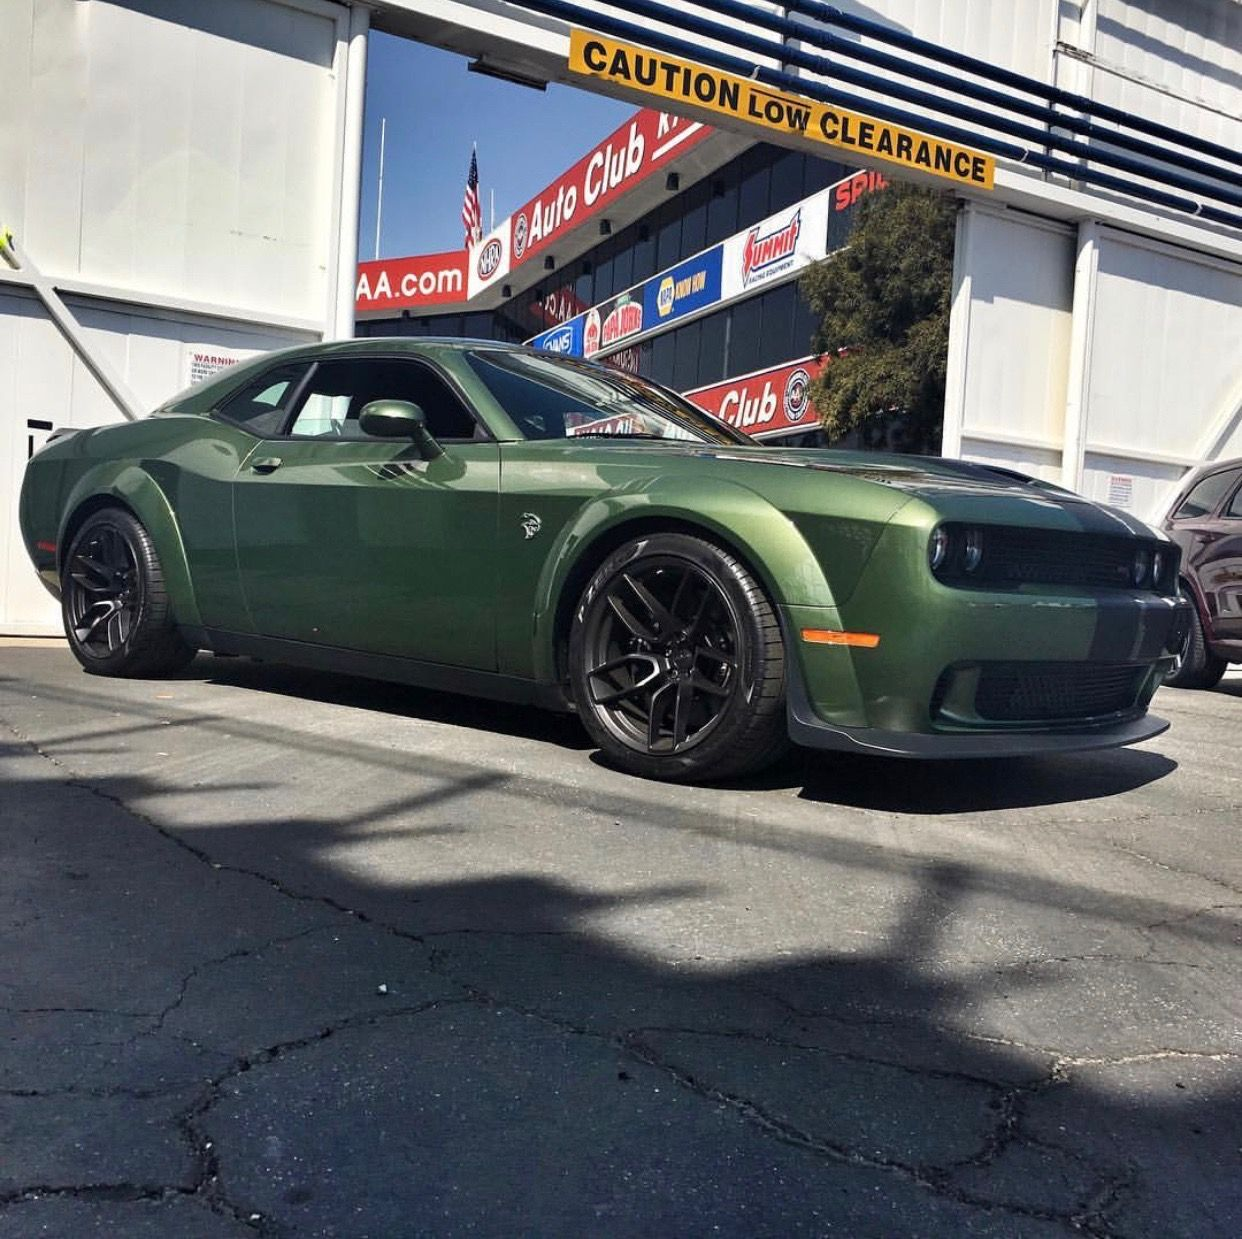 Dodge Challenger Srt Hellcat Widebody Painted In F8 Green W Black